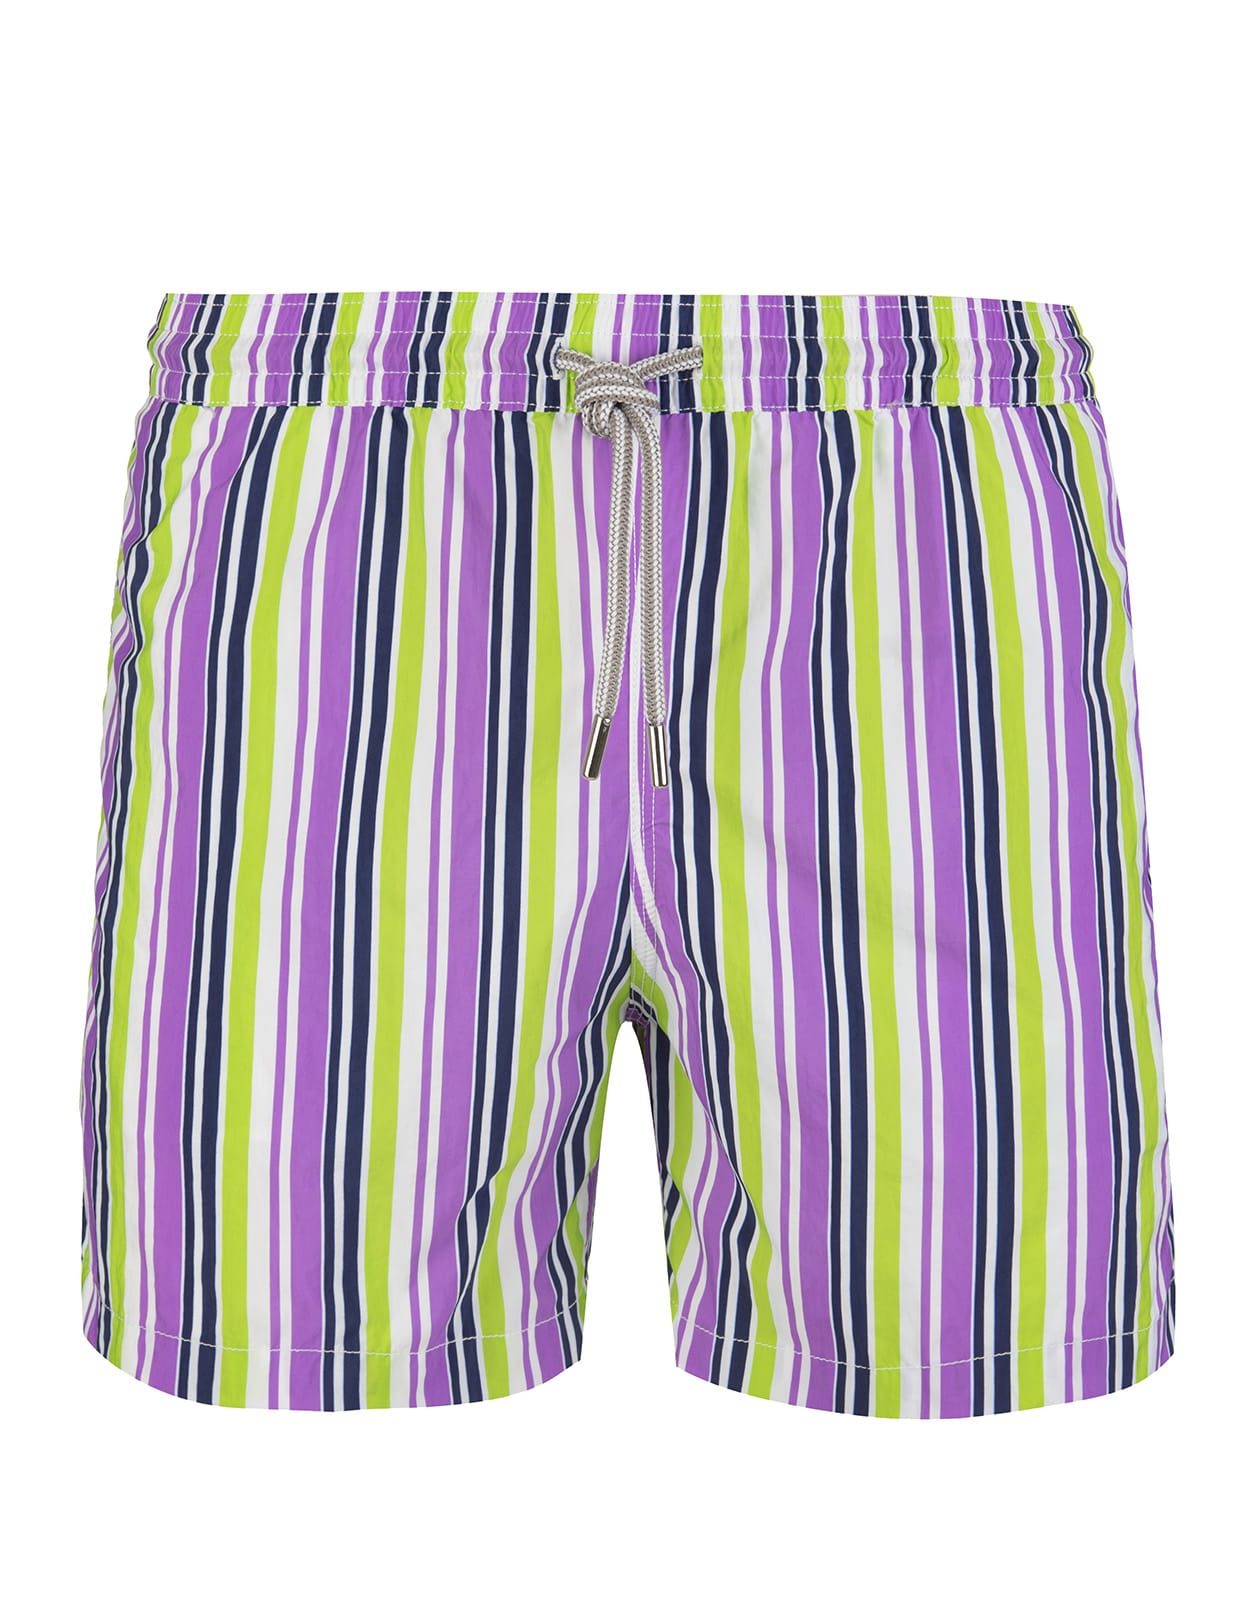 Purple And Light Green Striped Swimsuit